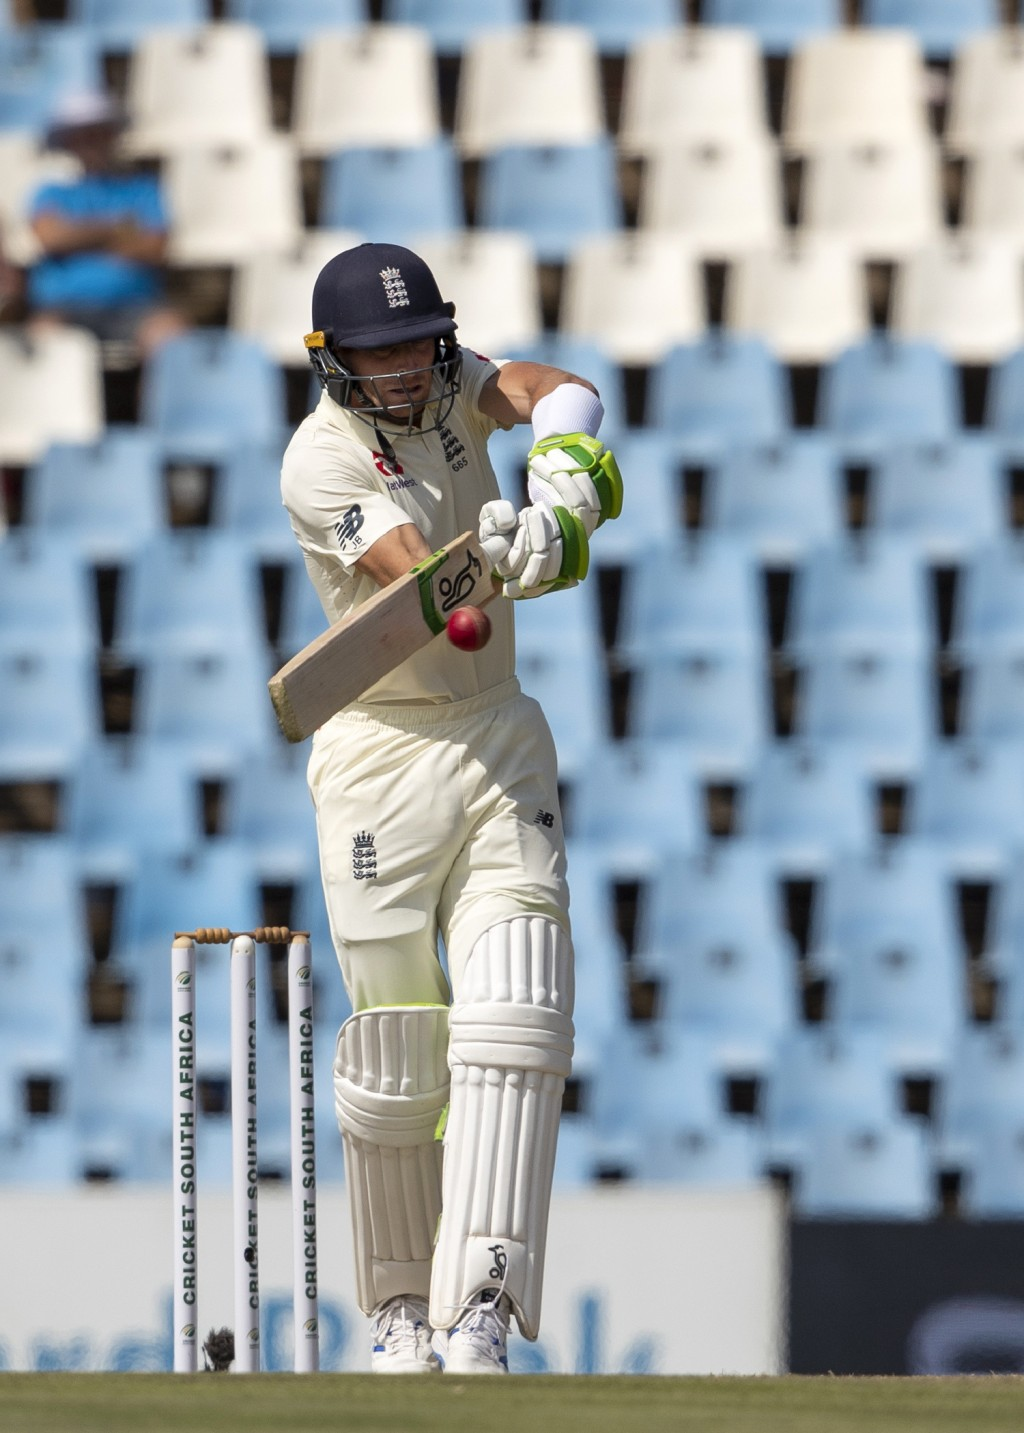 England's batsman Jos Buttler plays a shot on day two of the first cricket test match between South Africa and England at Centurion Park, Pretoria, So...